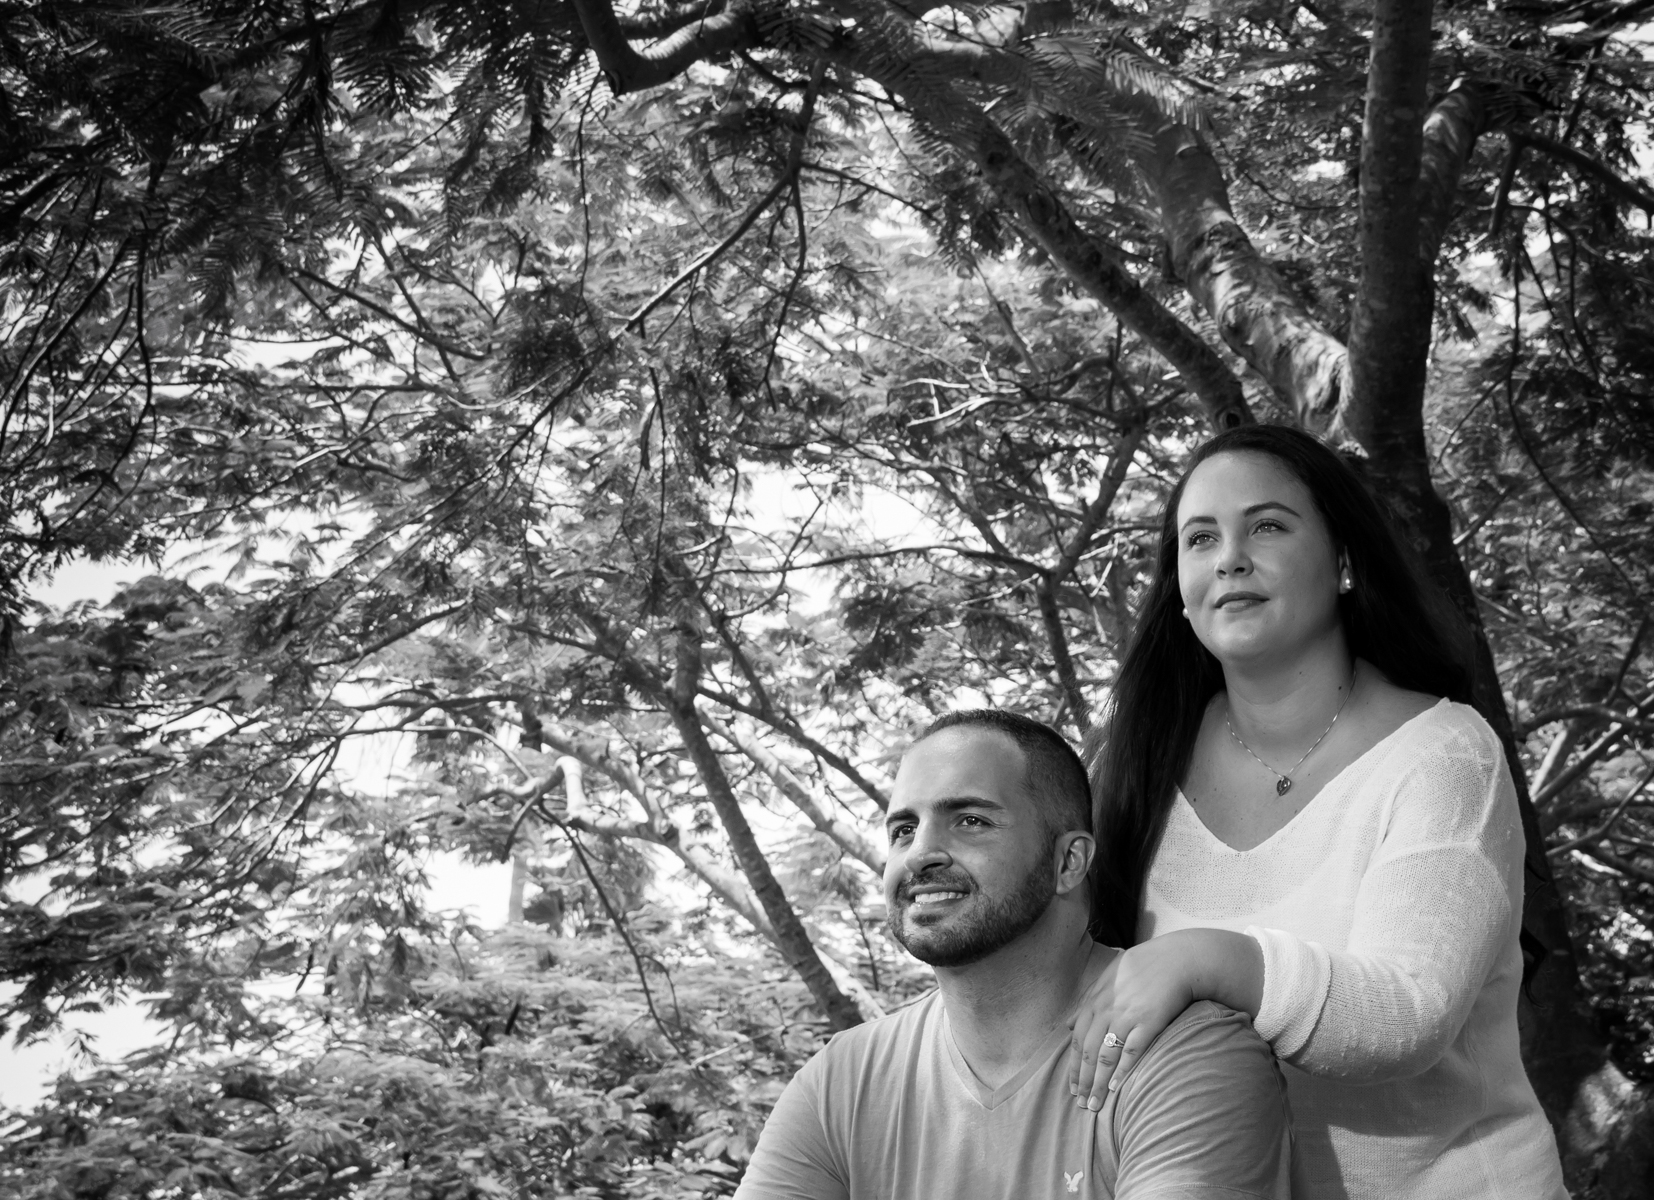 Couples Photography sessions in South Florida. Call us at (561) 307-9875